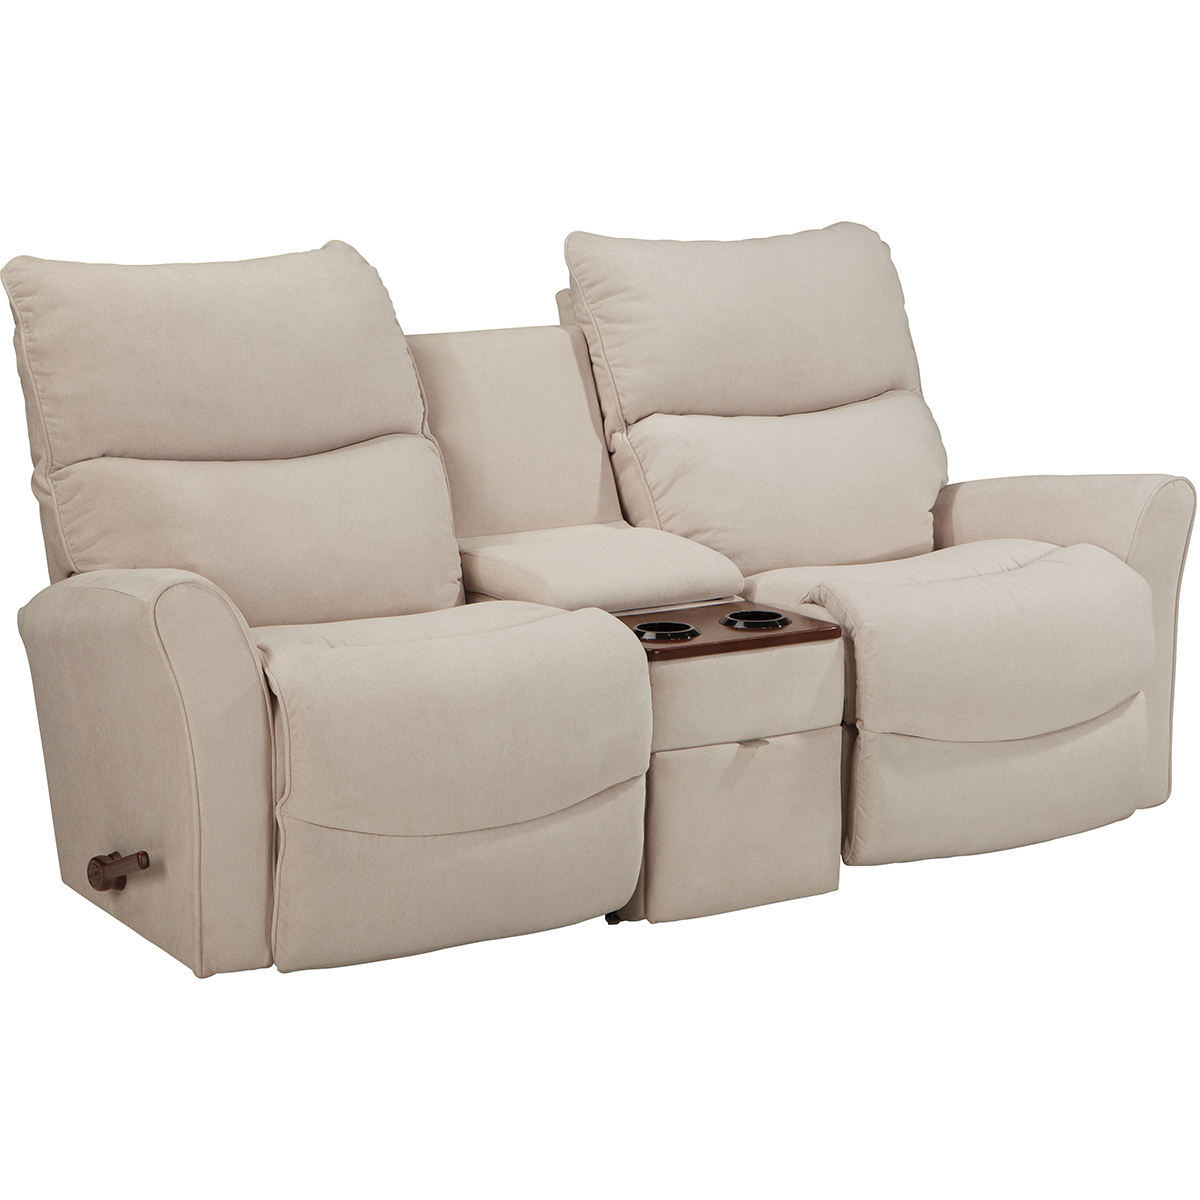 5 LaZ Boy Recliners For Your Every Need  Cuddly Home